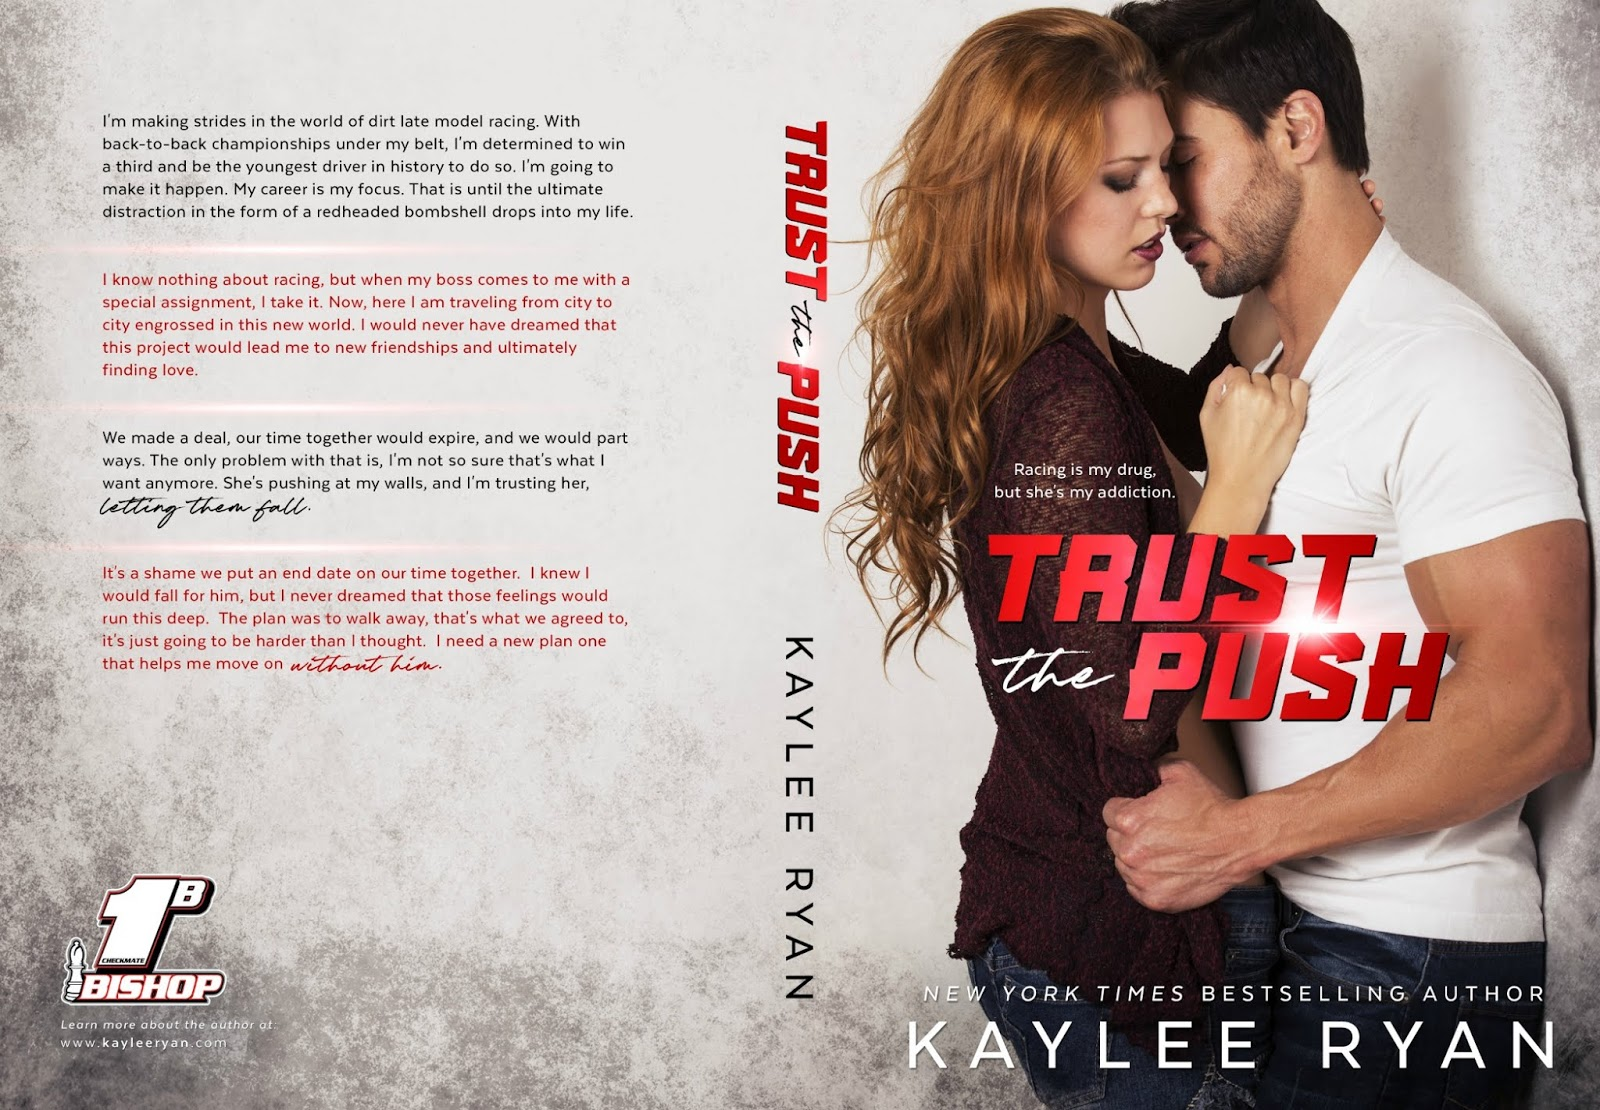 Trust the Push by Kaylee Ryan Cover Reveal | | Sultry Sirens Book Blog